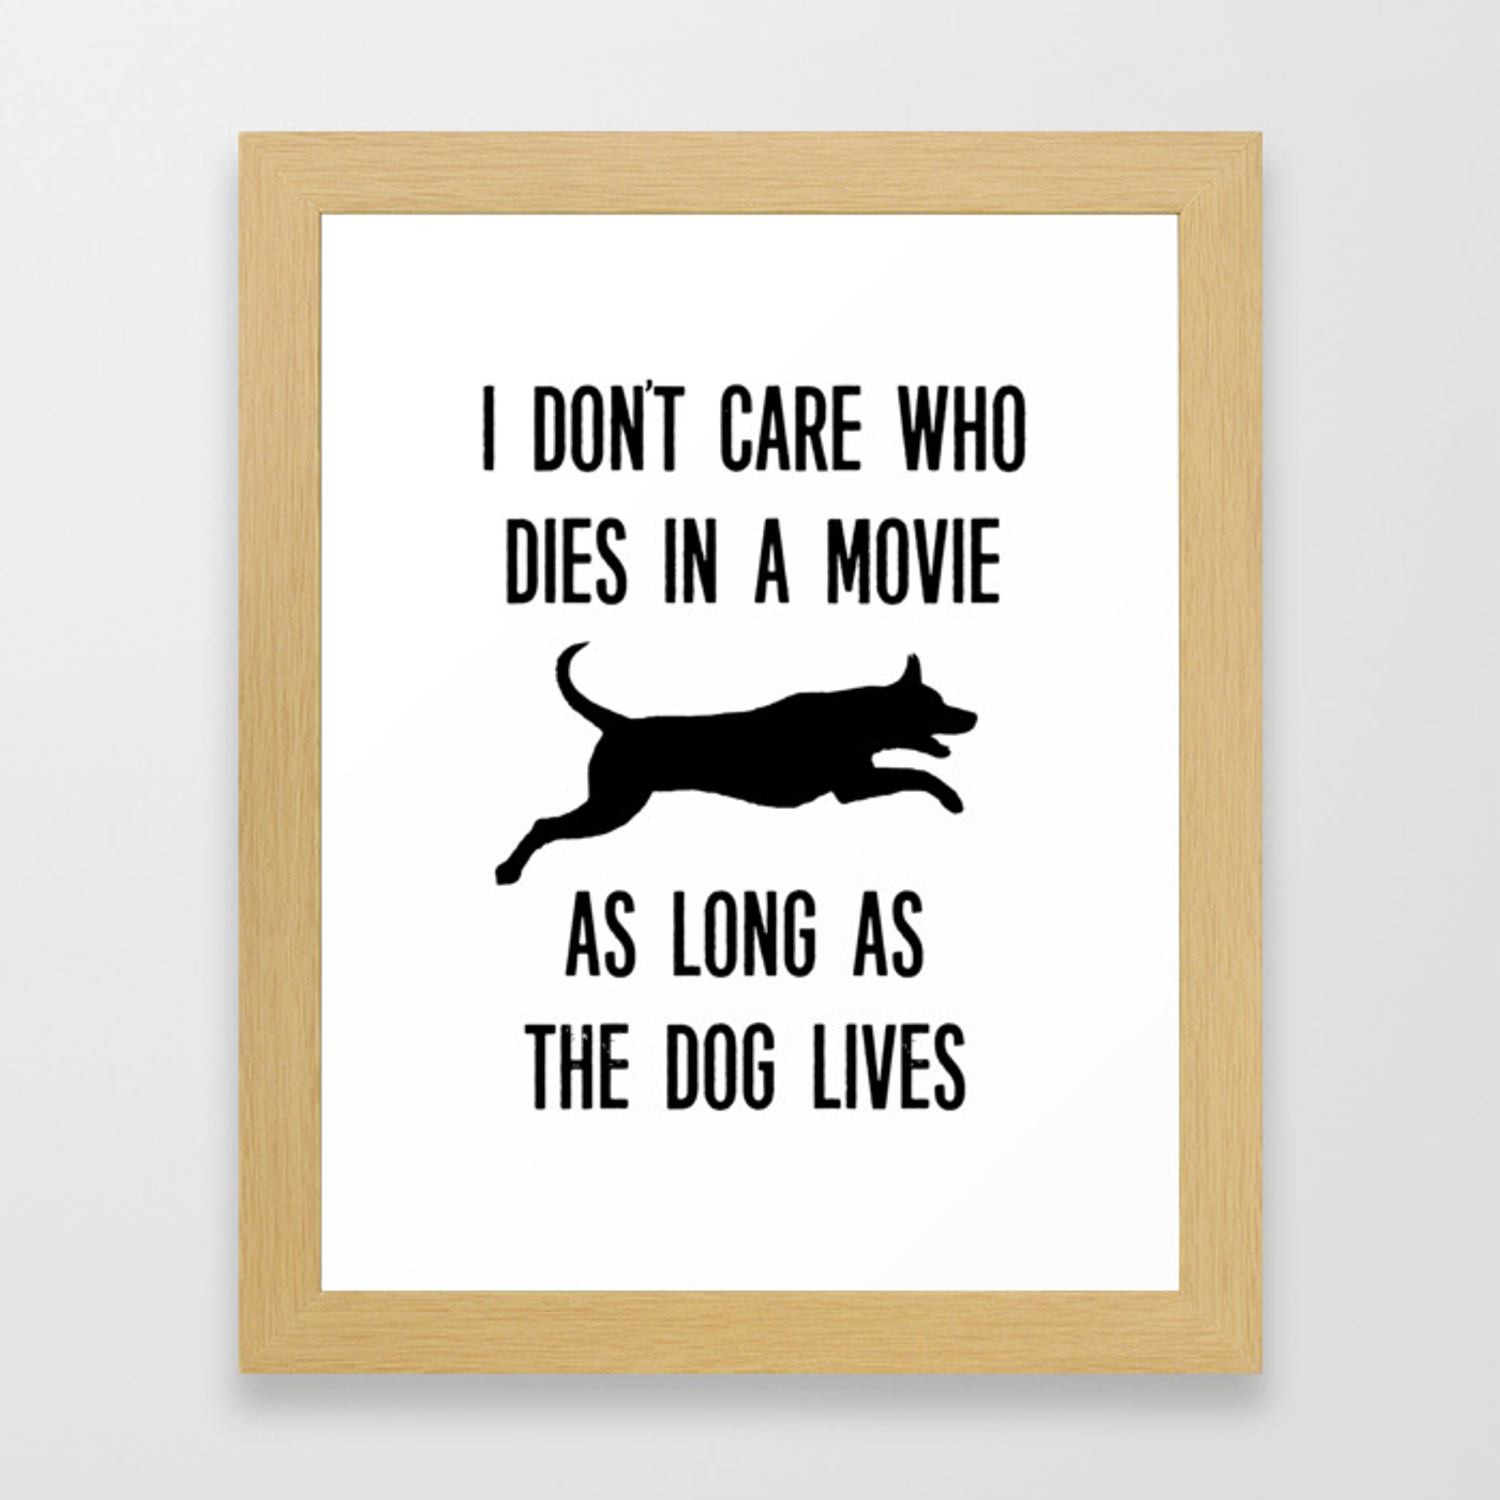 I Don't Care Who Dies In A Movie As Long As The Dog Lives Framed Art Print